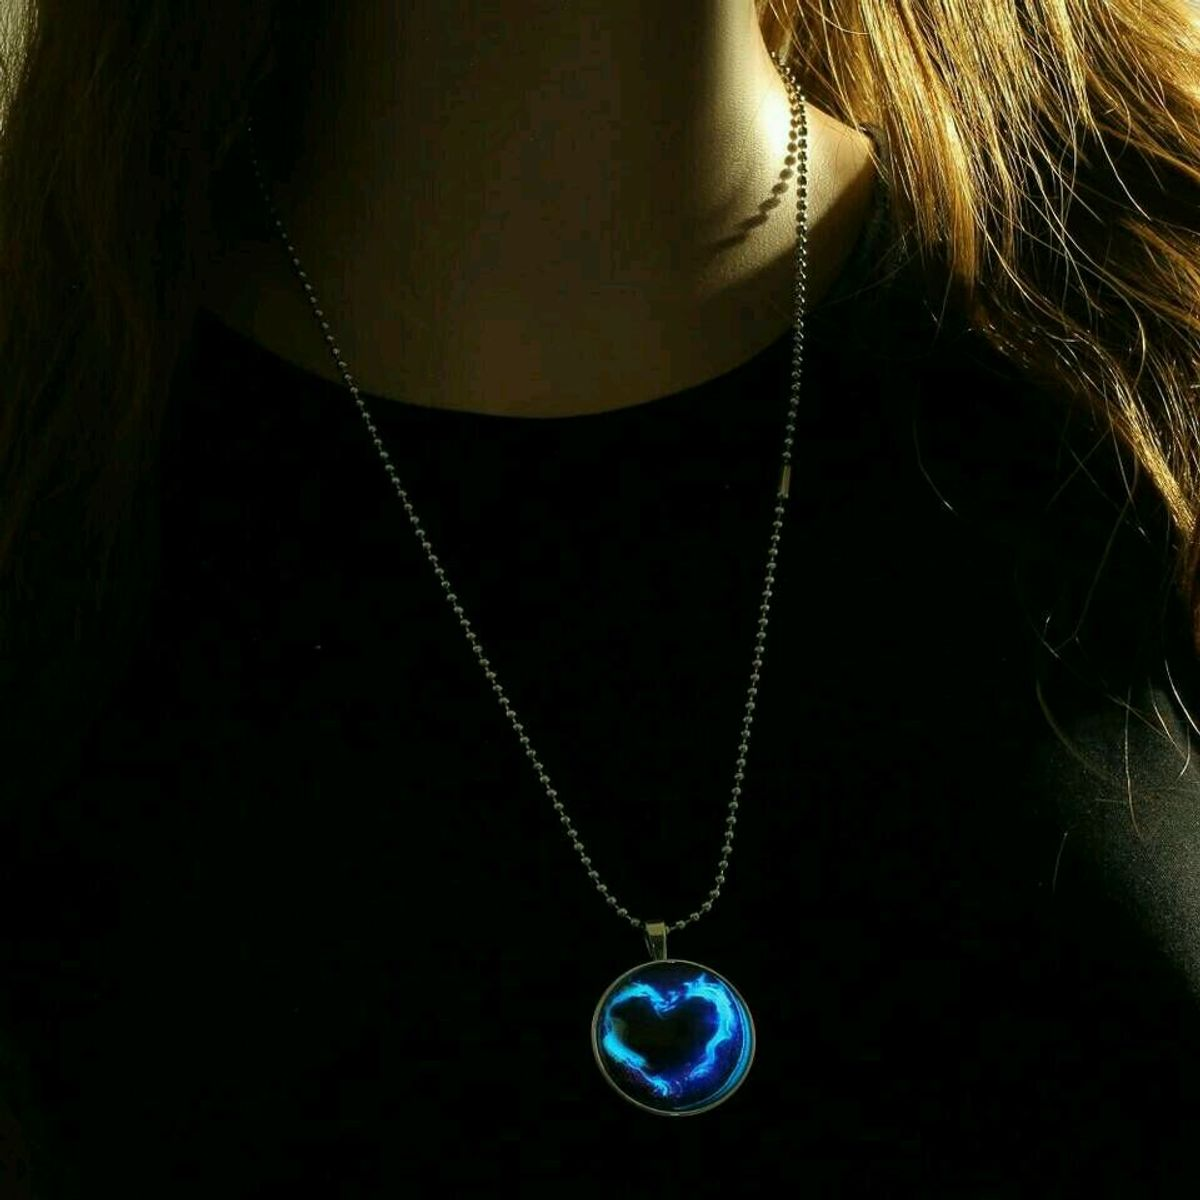 necklaces dark from jewelry item photo moon plated glowing glow pendant art cabochon silver the in necklace cat fine